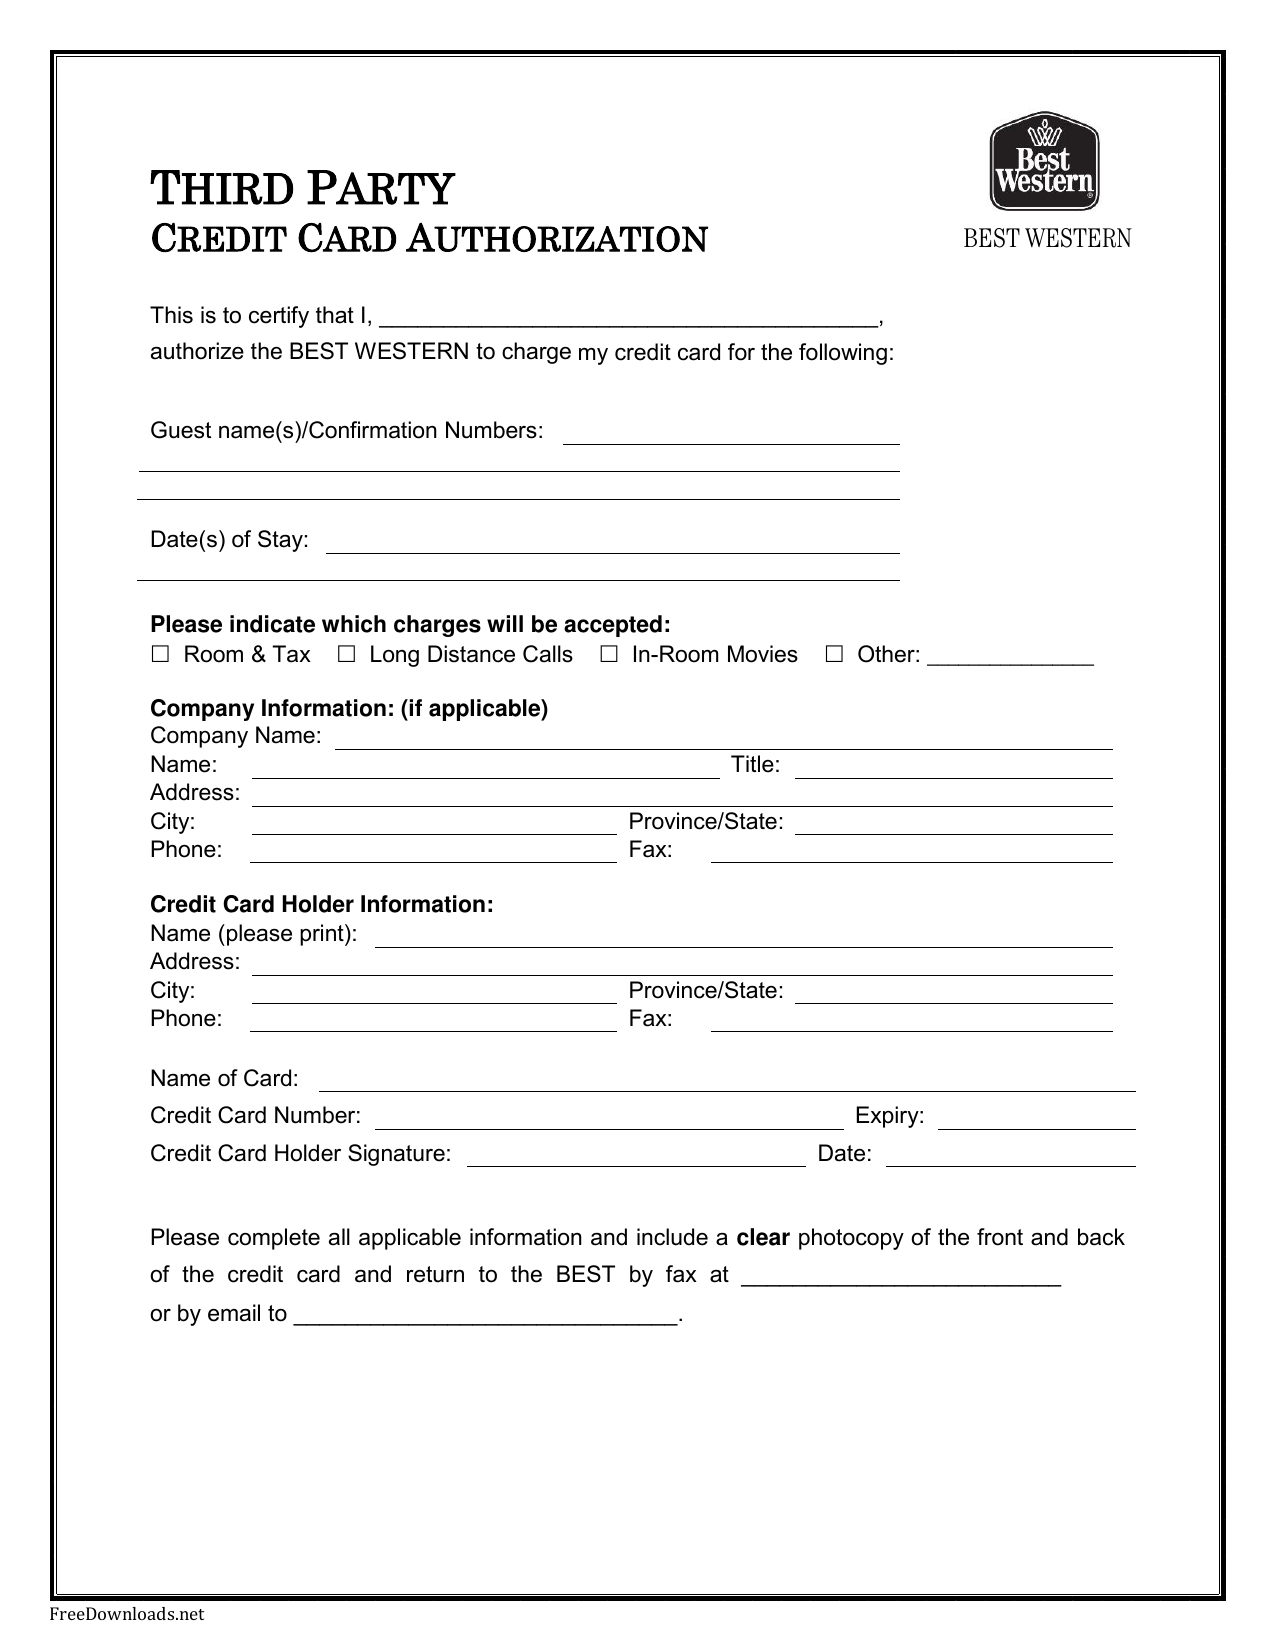 Credit Card Authorization Form Template Pdf - Colona.rsd7 Pertaining To Hotel Credit Card Authorization Form Template